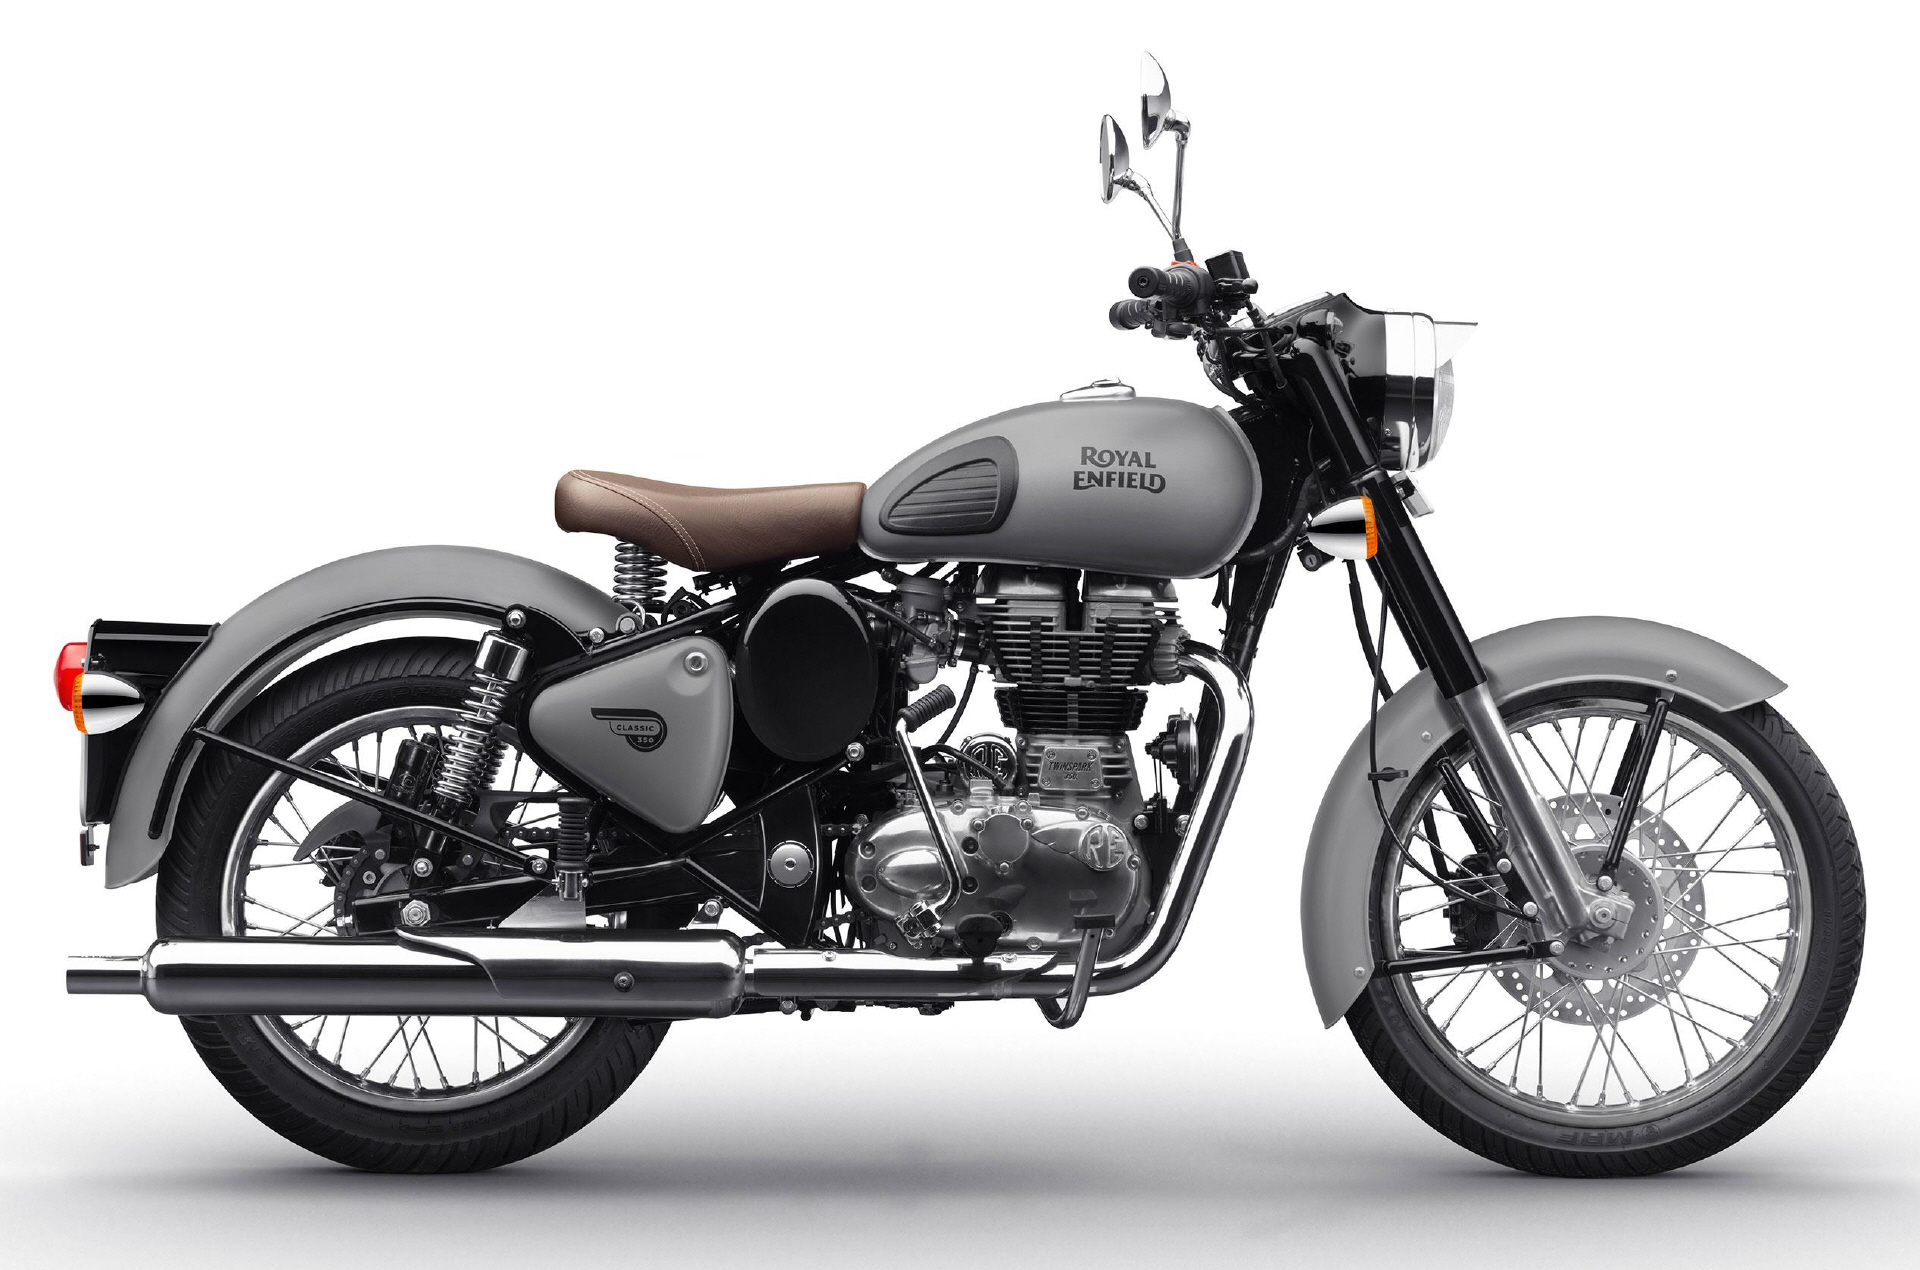 royalenfield_classic500_gunmetal_03jpg